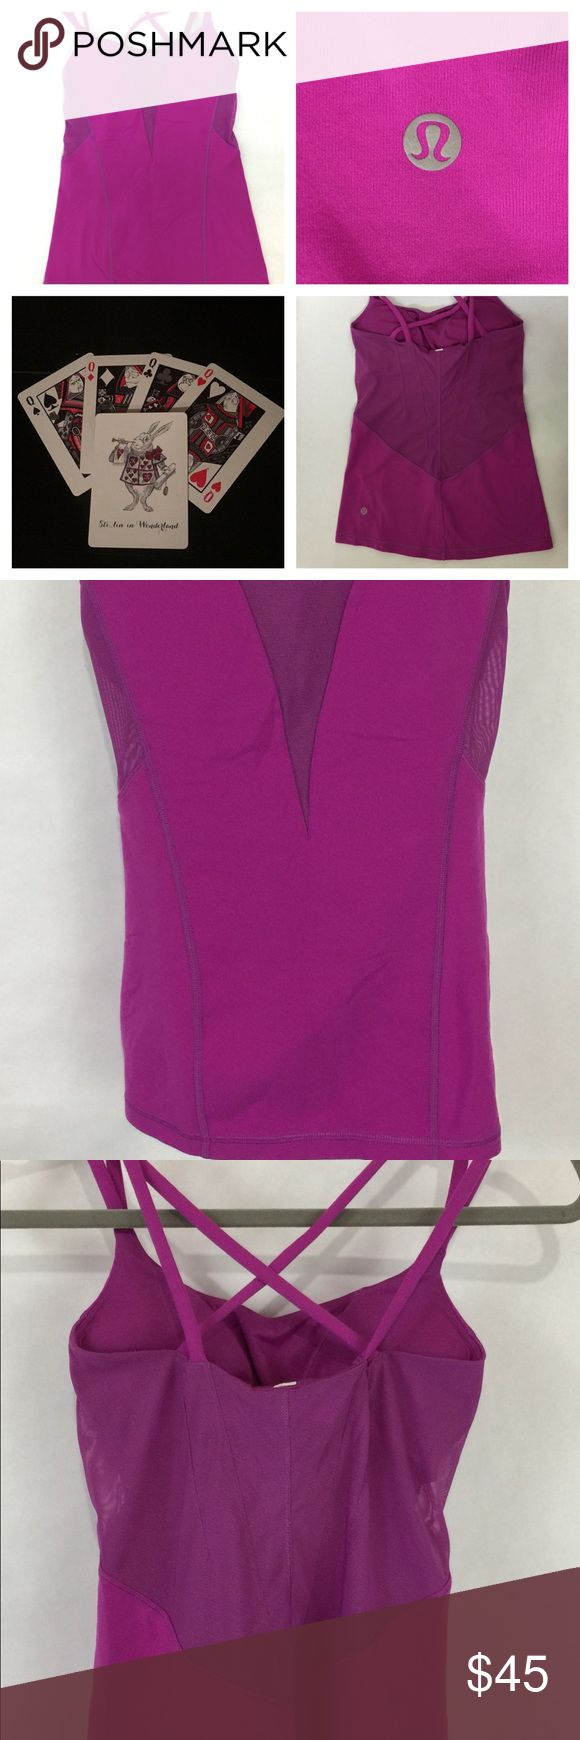 """Lululemon Exquisite Tank Top Sz 4 Ultra Violet * Brand - Lululemon  * Excellent pre owned condition  * Size - 4  * Style - Exquisite Tank Top  * Details - rich pink/purple magenta color with built in bra and bra inserts. Strappy Top with sheer V panel in front and back panel.  * Measurements: laying flat unstretched: armpit to armpit: 13 3/4"""", and armpit to bottom down side seam: 16 1/2"""". lululemon athletica Tops Tank Tops"""